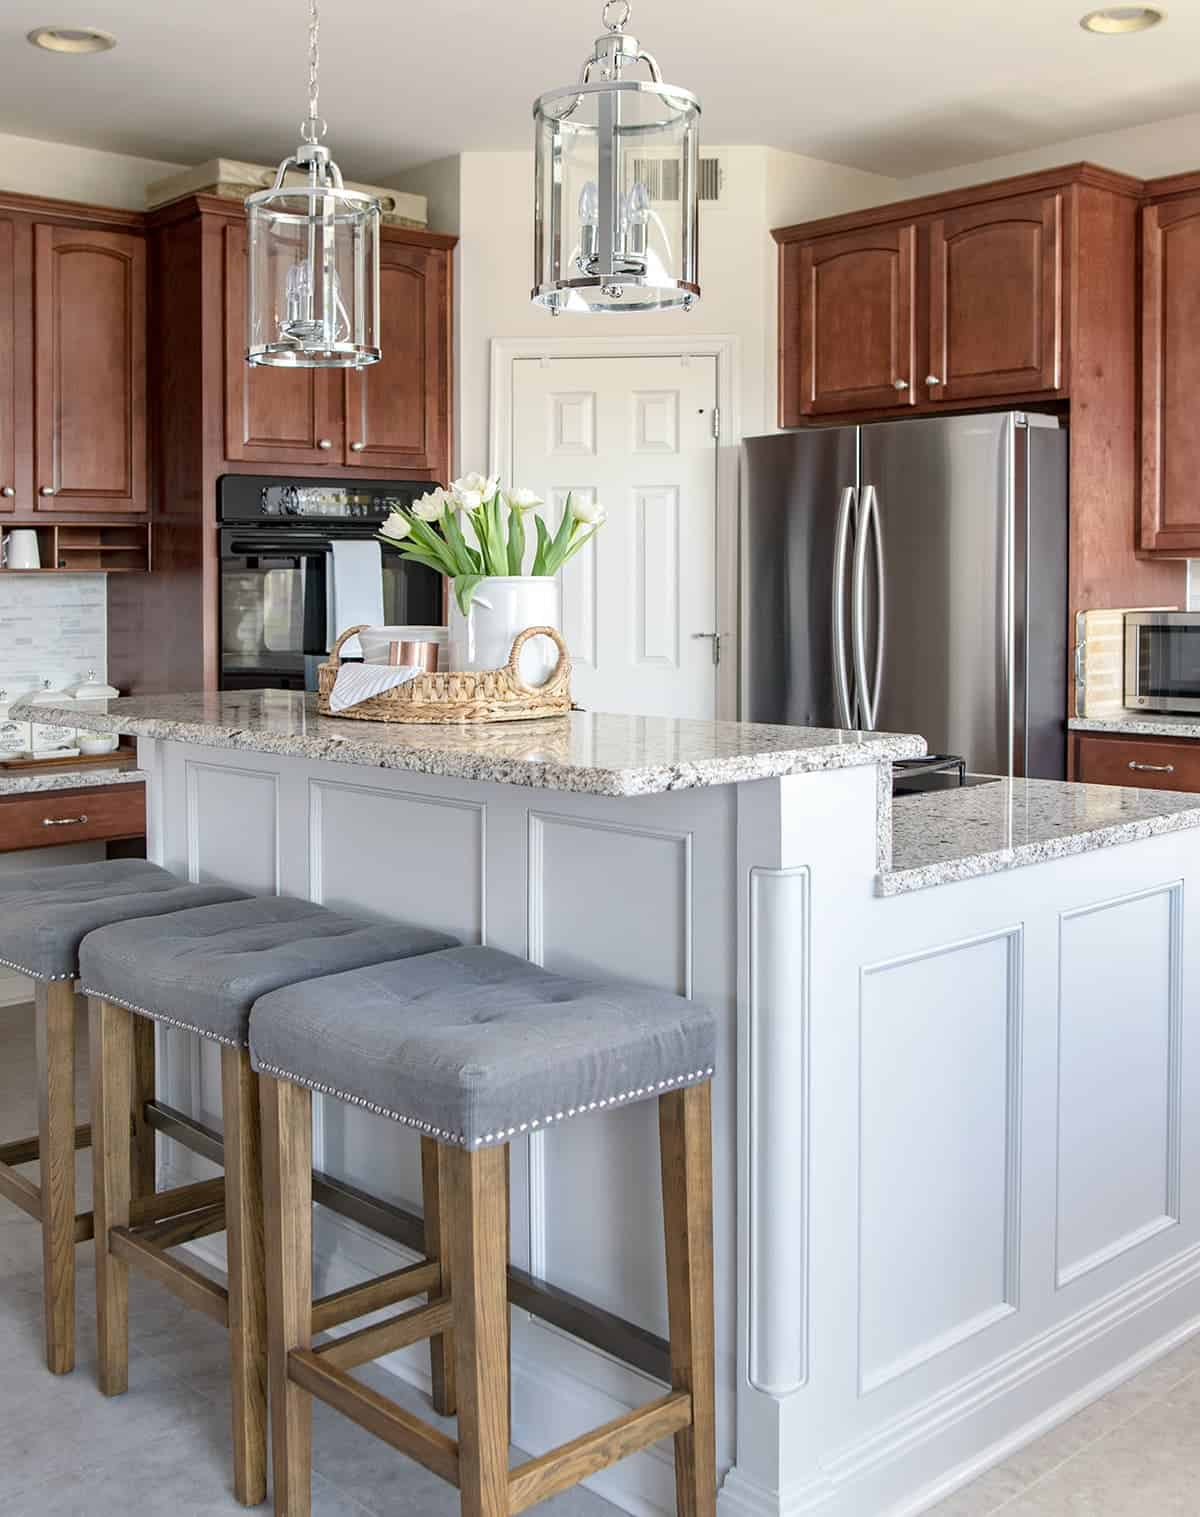 Modern Traditional Kitchen with Wood Cabinets and gray island, light marble countertops, pendant lights, and luxury vinyl floor.